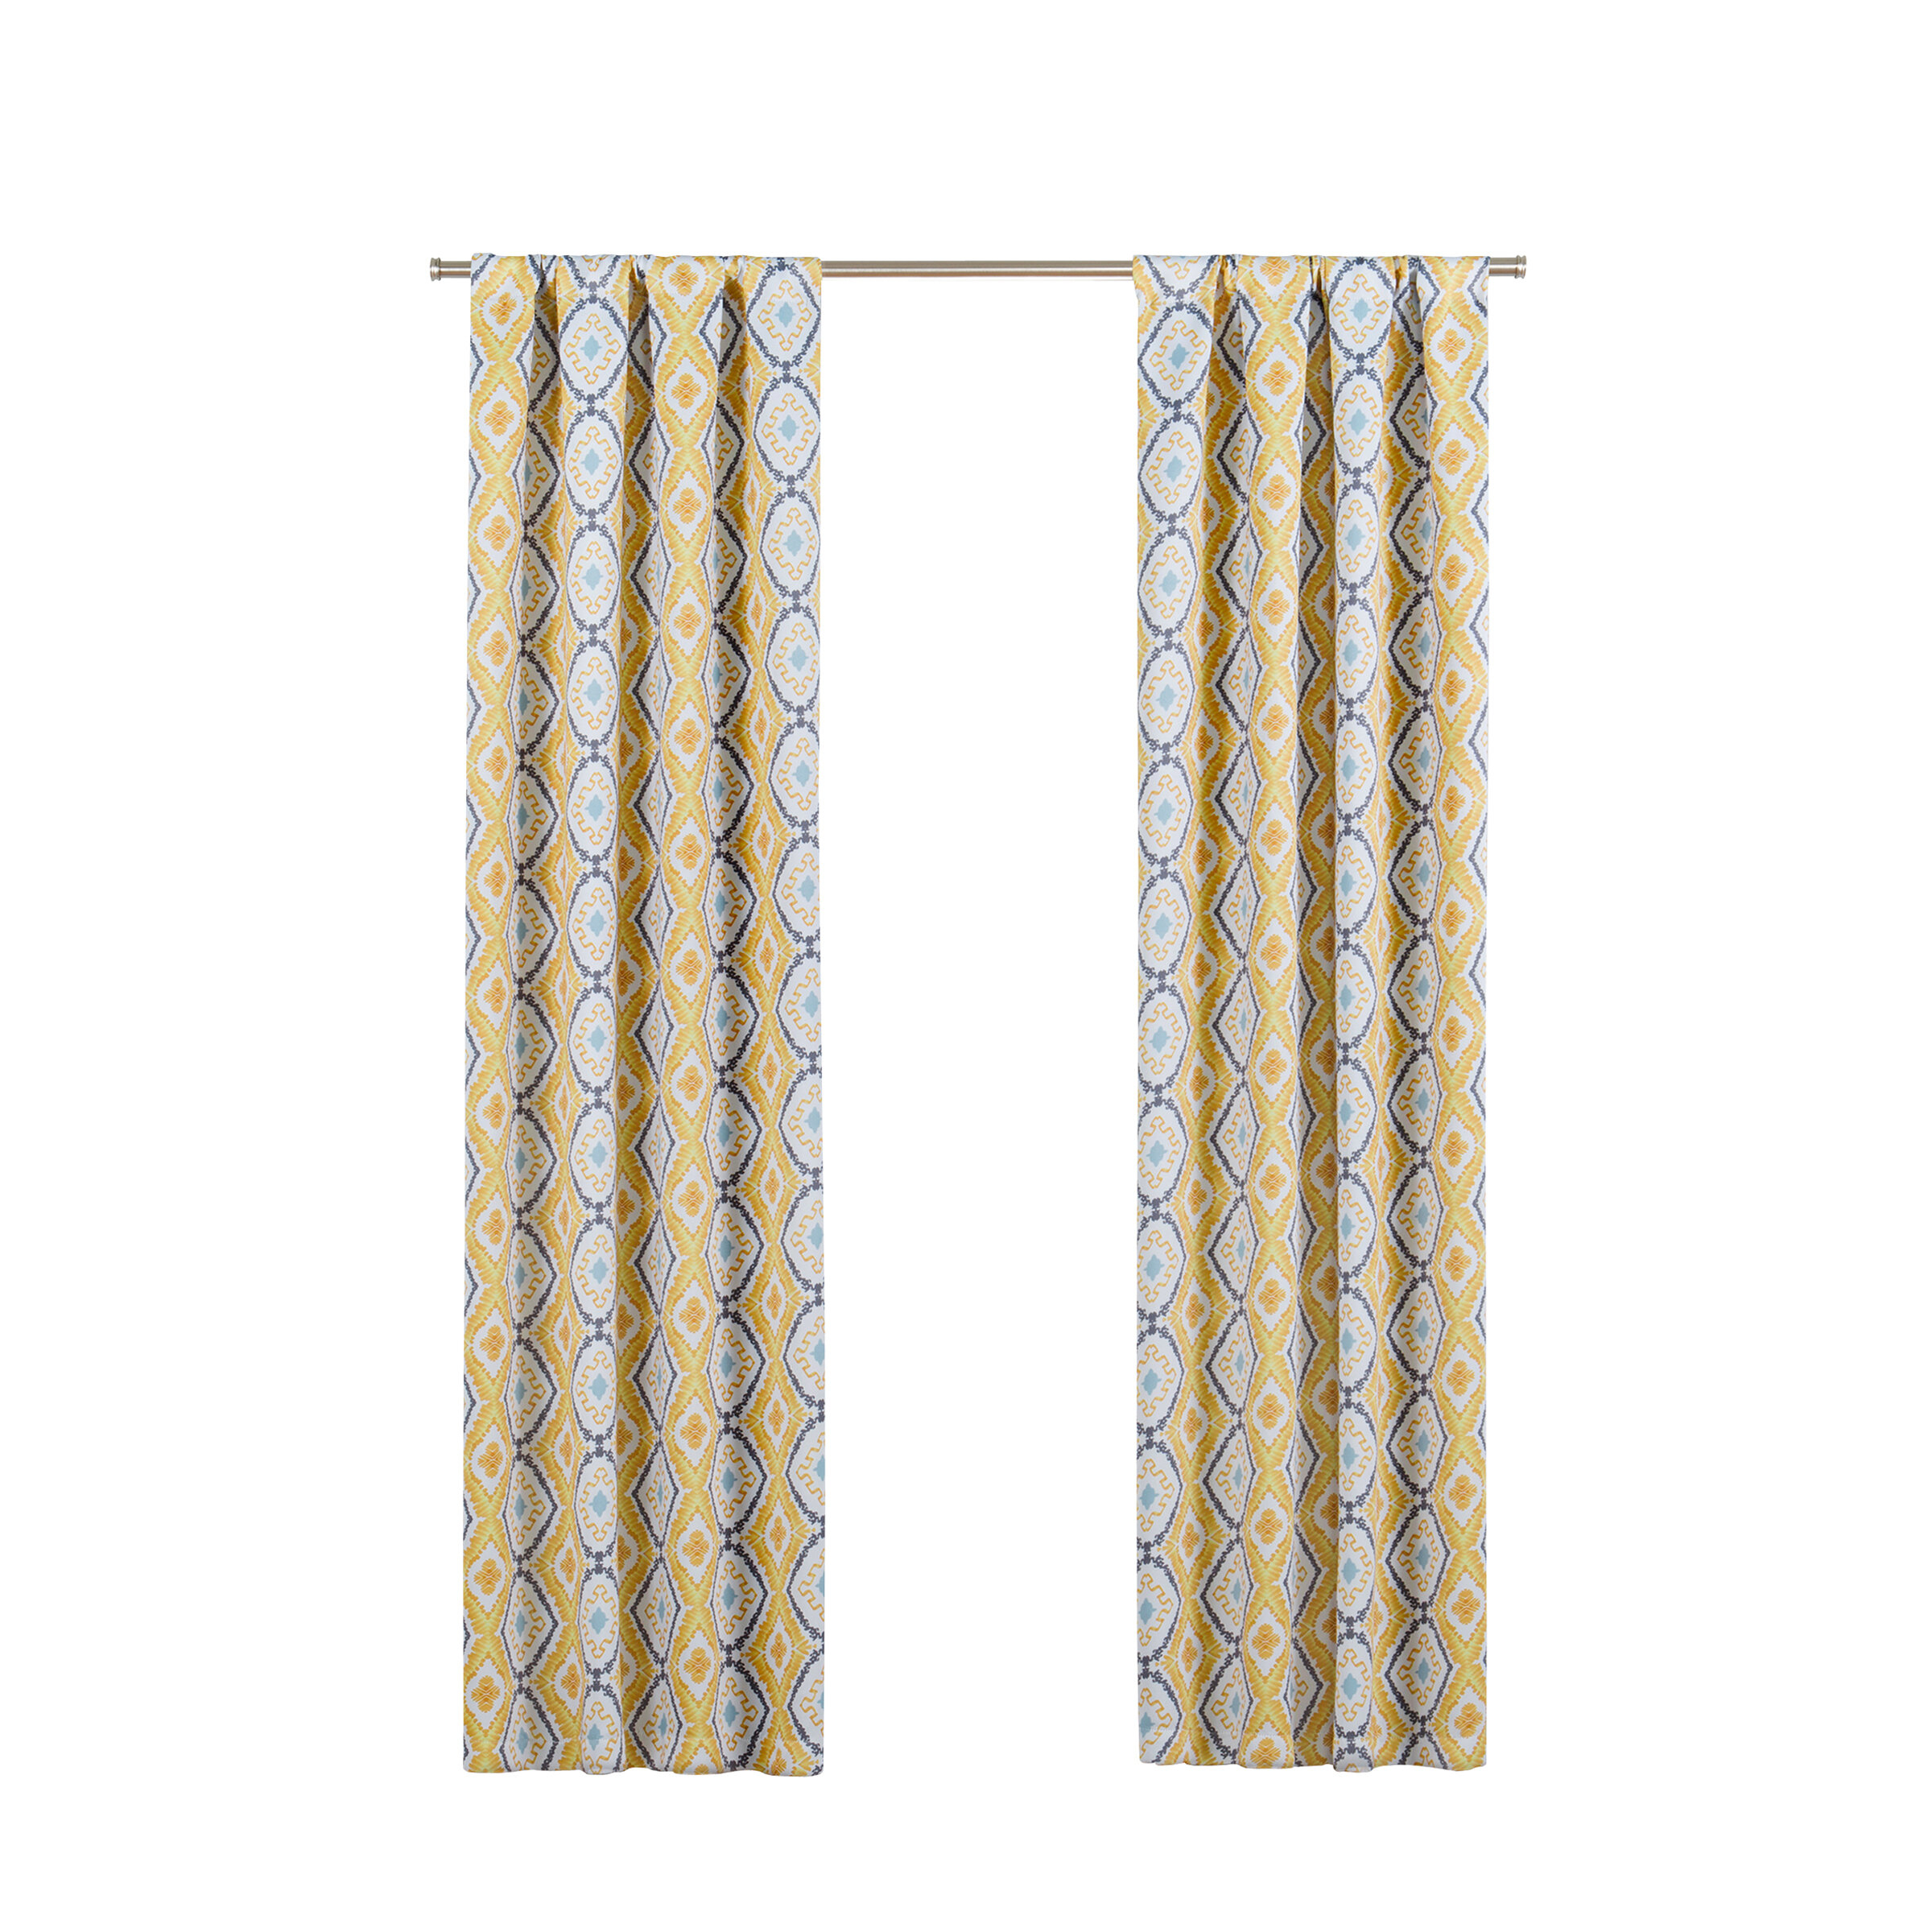 Nicholls Geometric Blackout Thermal Rod Pocket Single Curtain Panel Throughout Geometric Print Textured Thermal Insulated Grommet Curtain Panels (View 14 of 20)